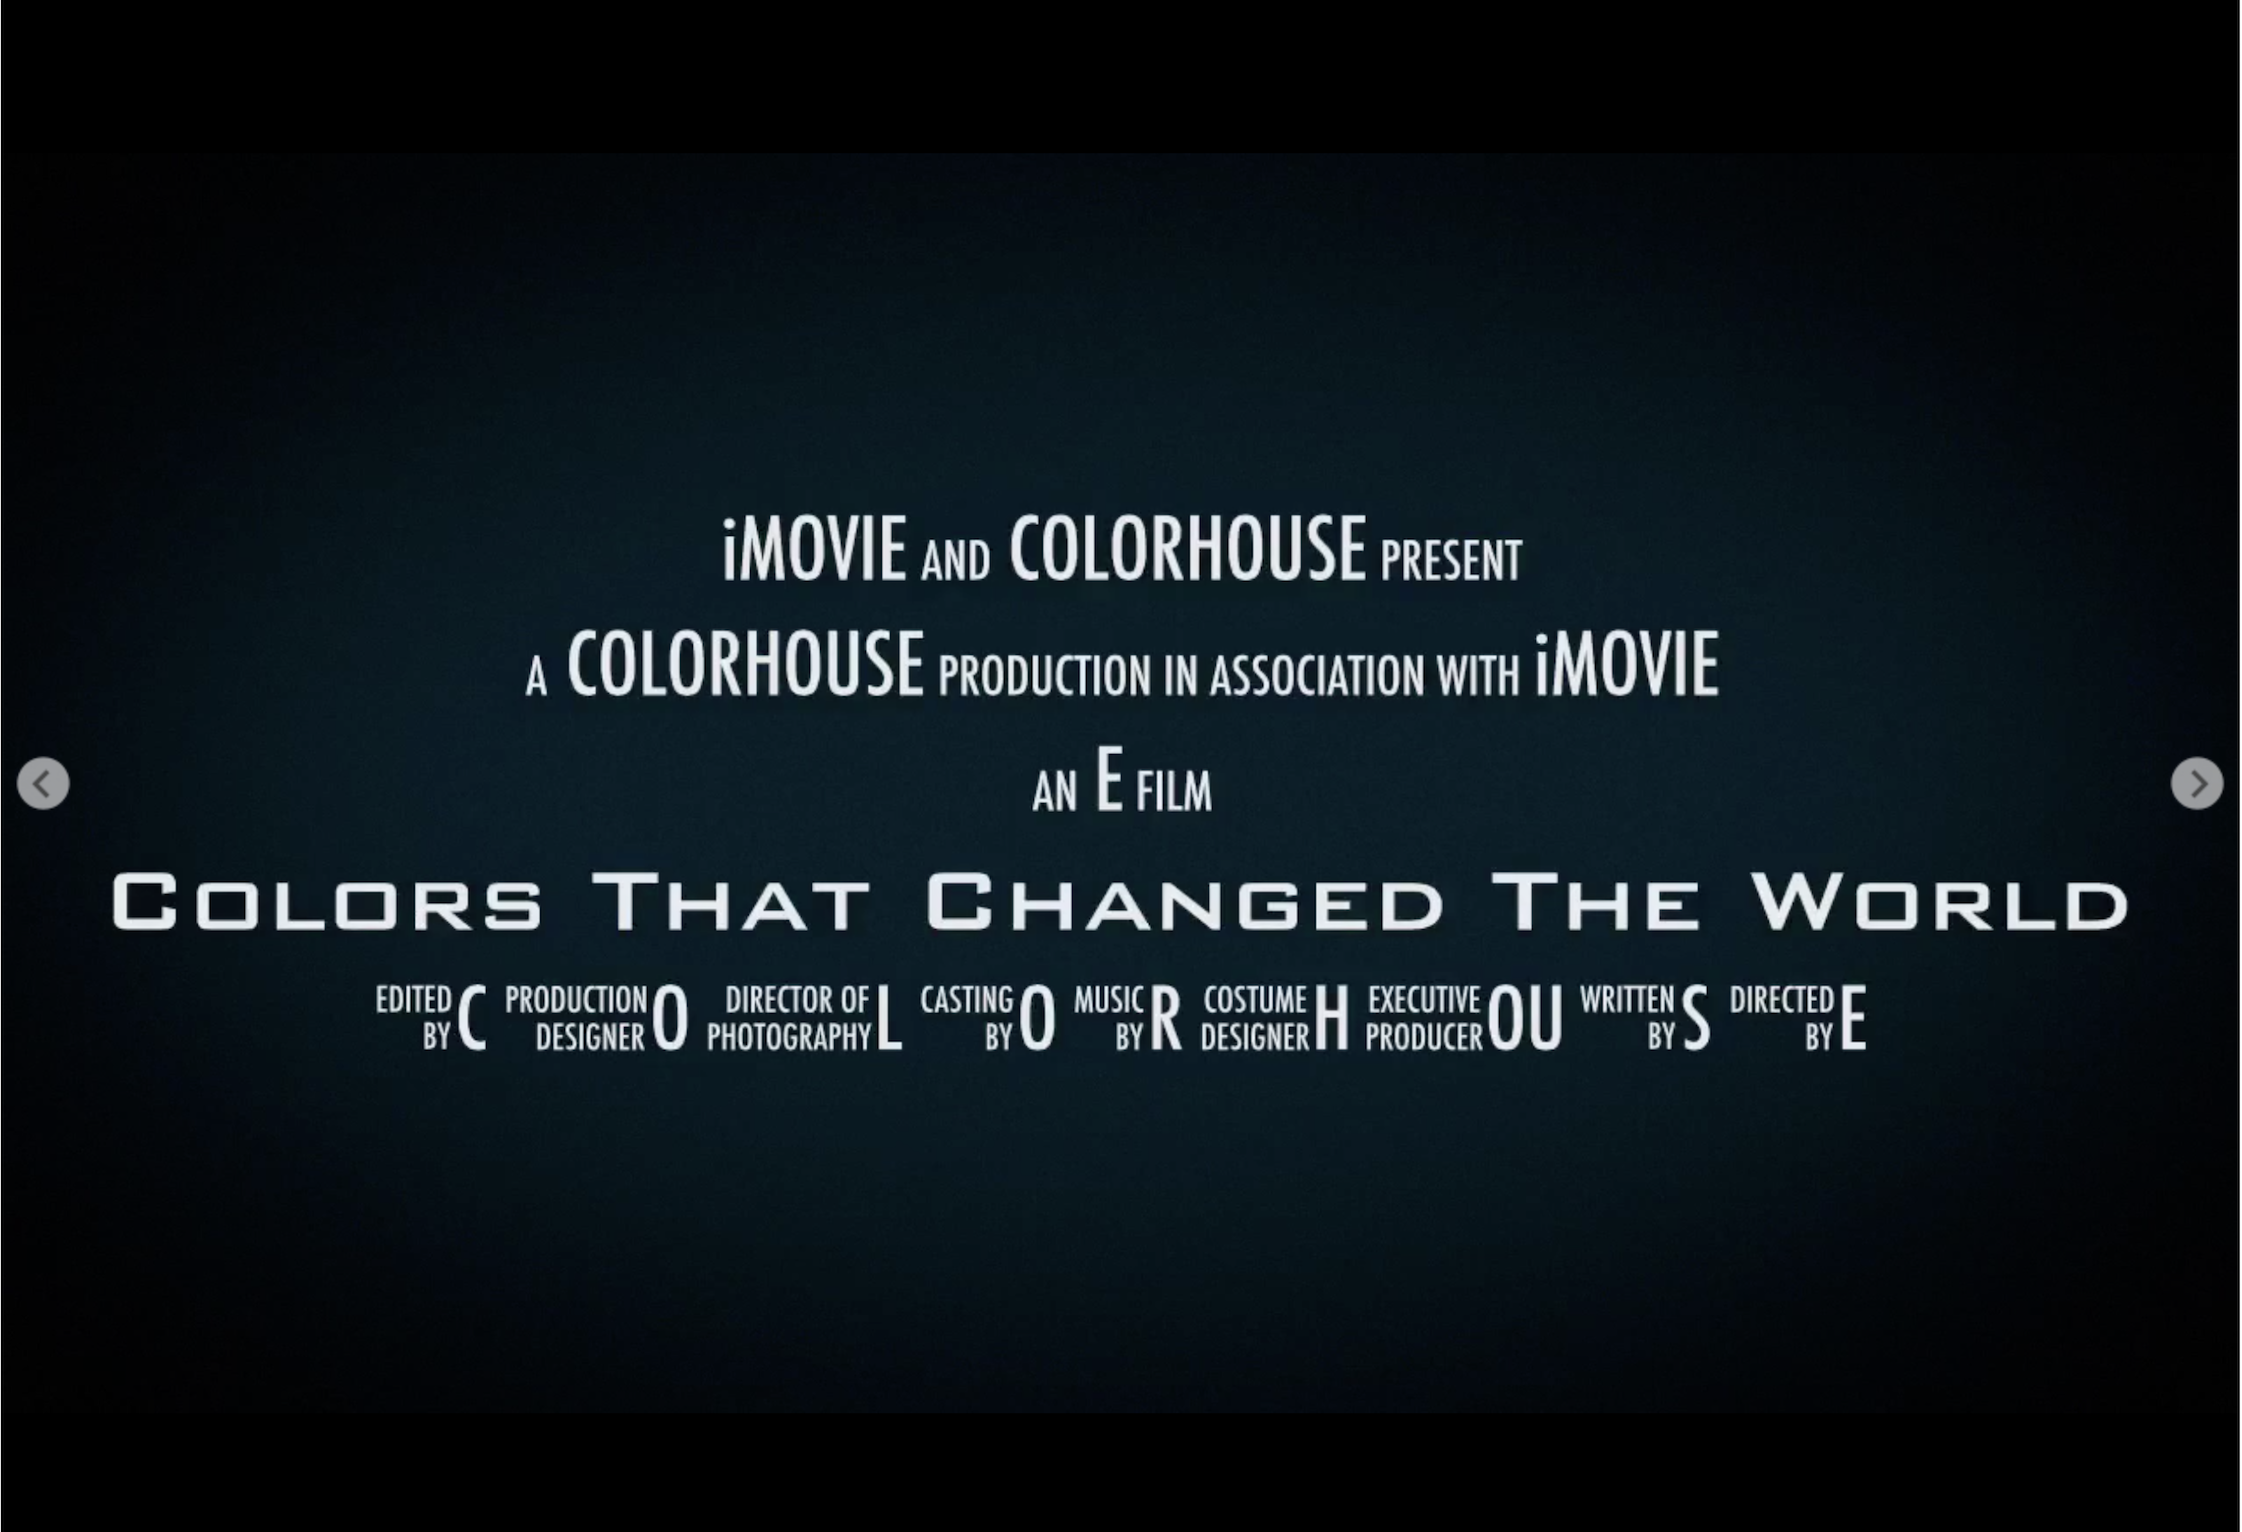 Colors That Changed the World